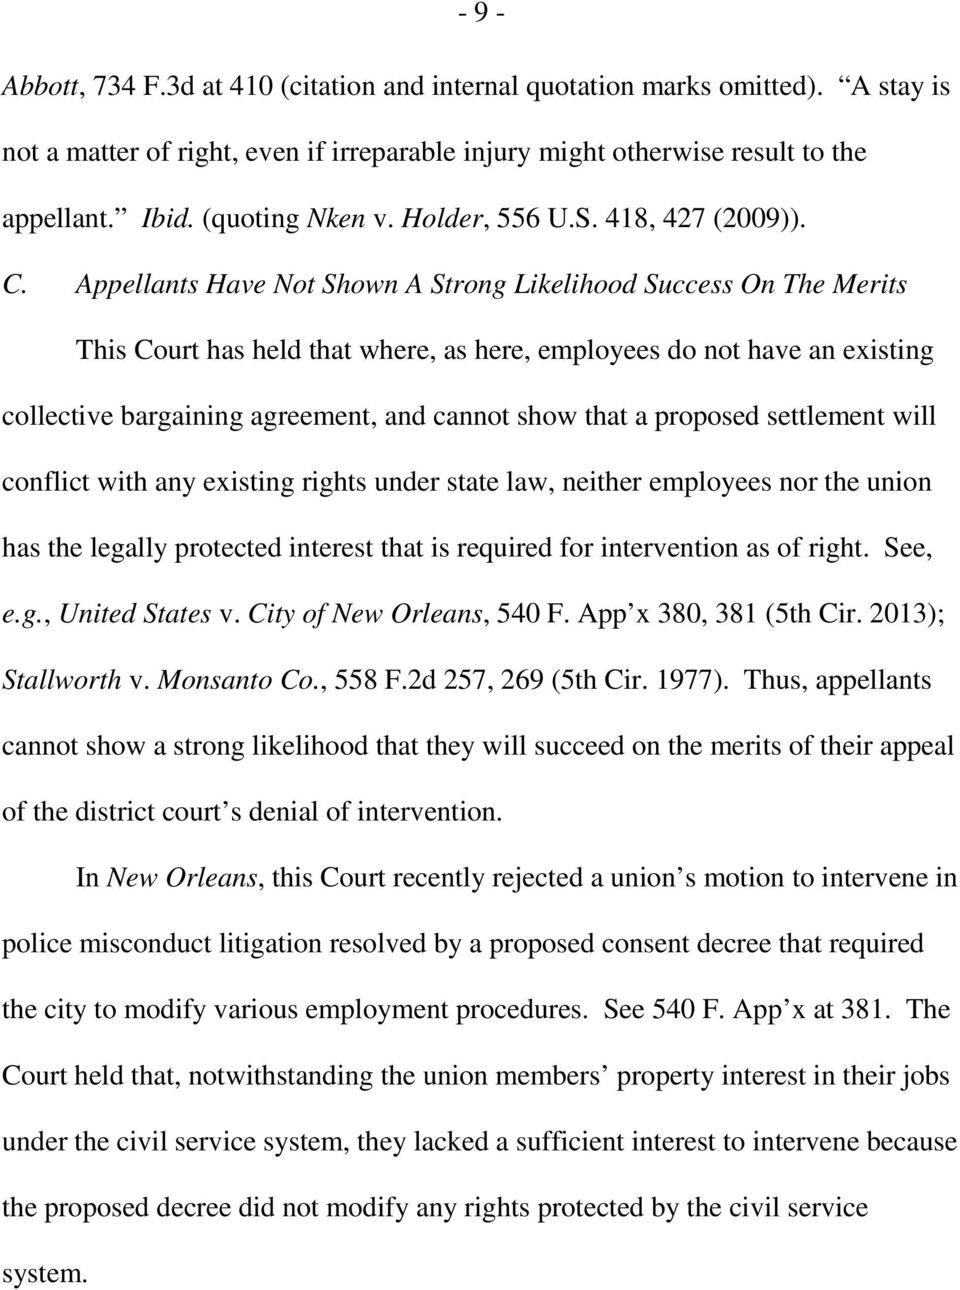 Appellants Have Not Shown A Strong Likelihood Success On The Merits This Court has held that where, as here, employees do not have an existing collective bargaining agreement, and cannot show that a